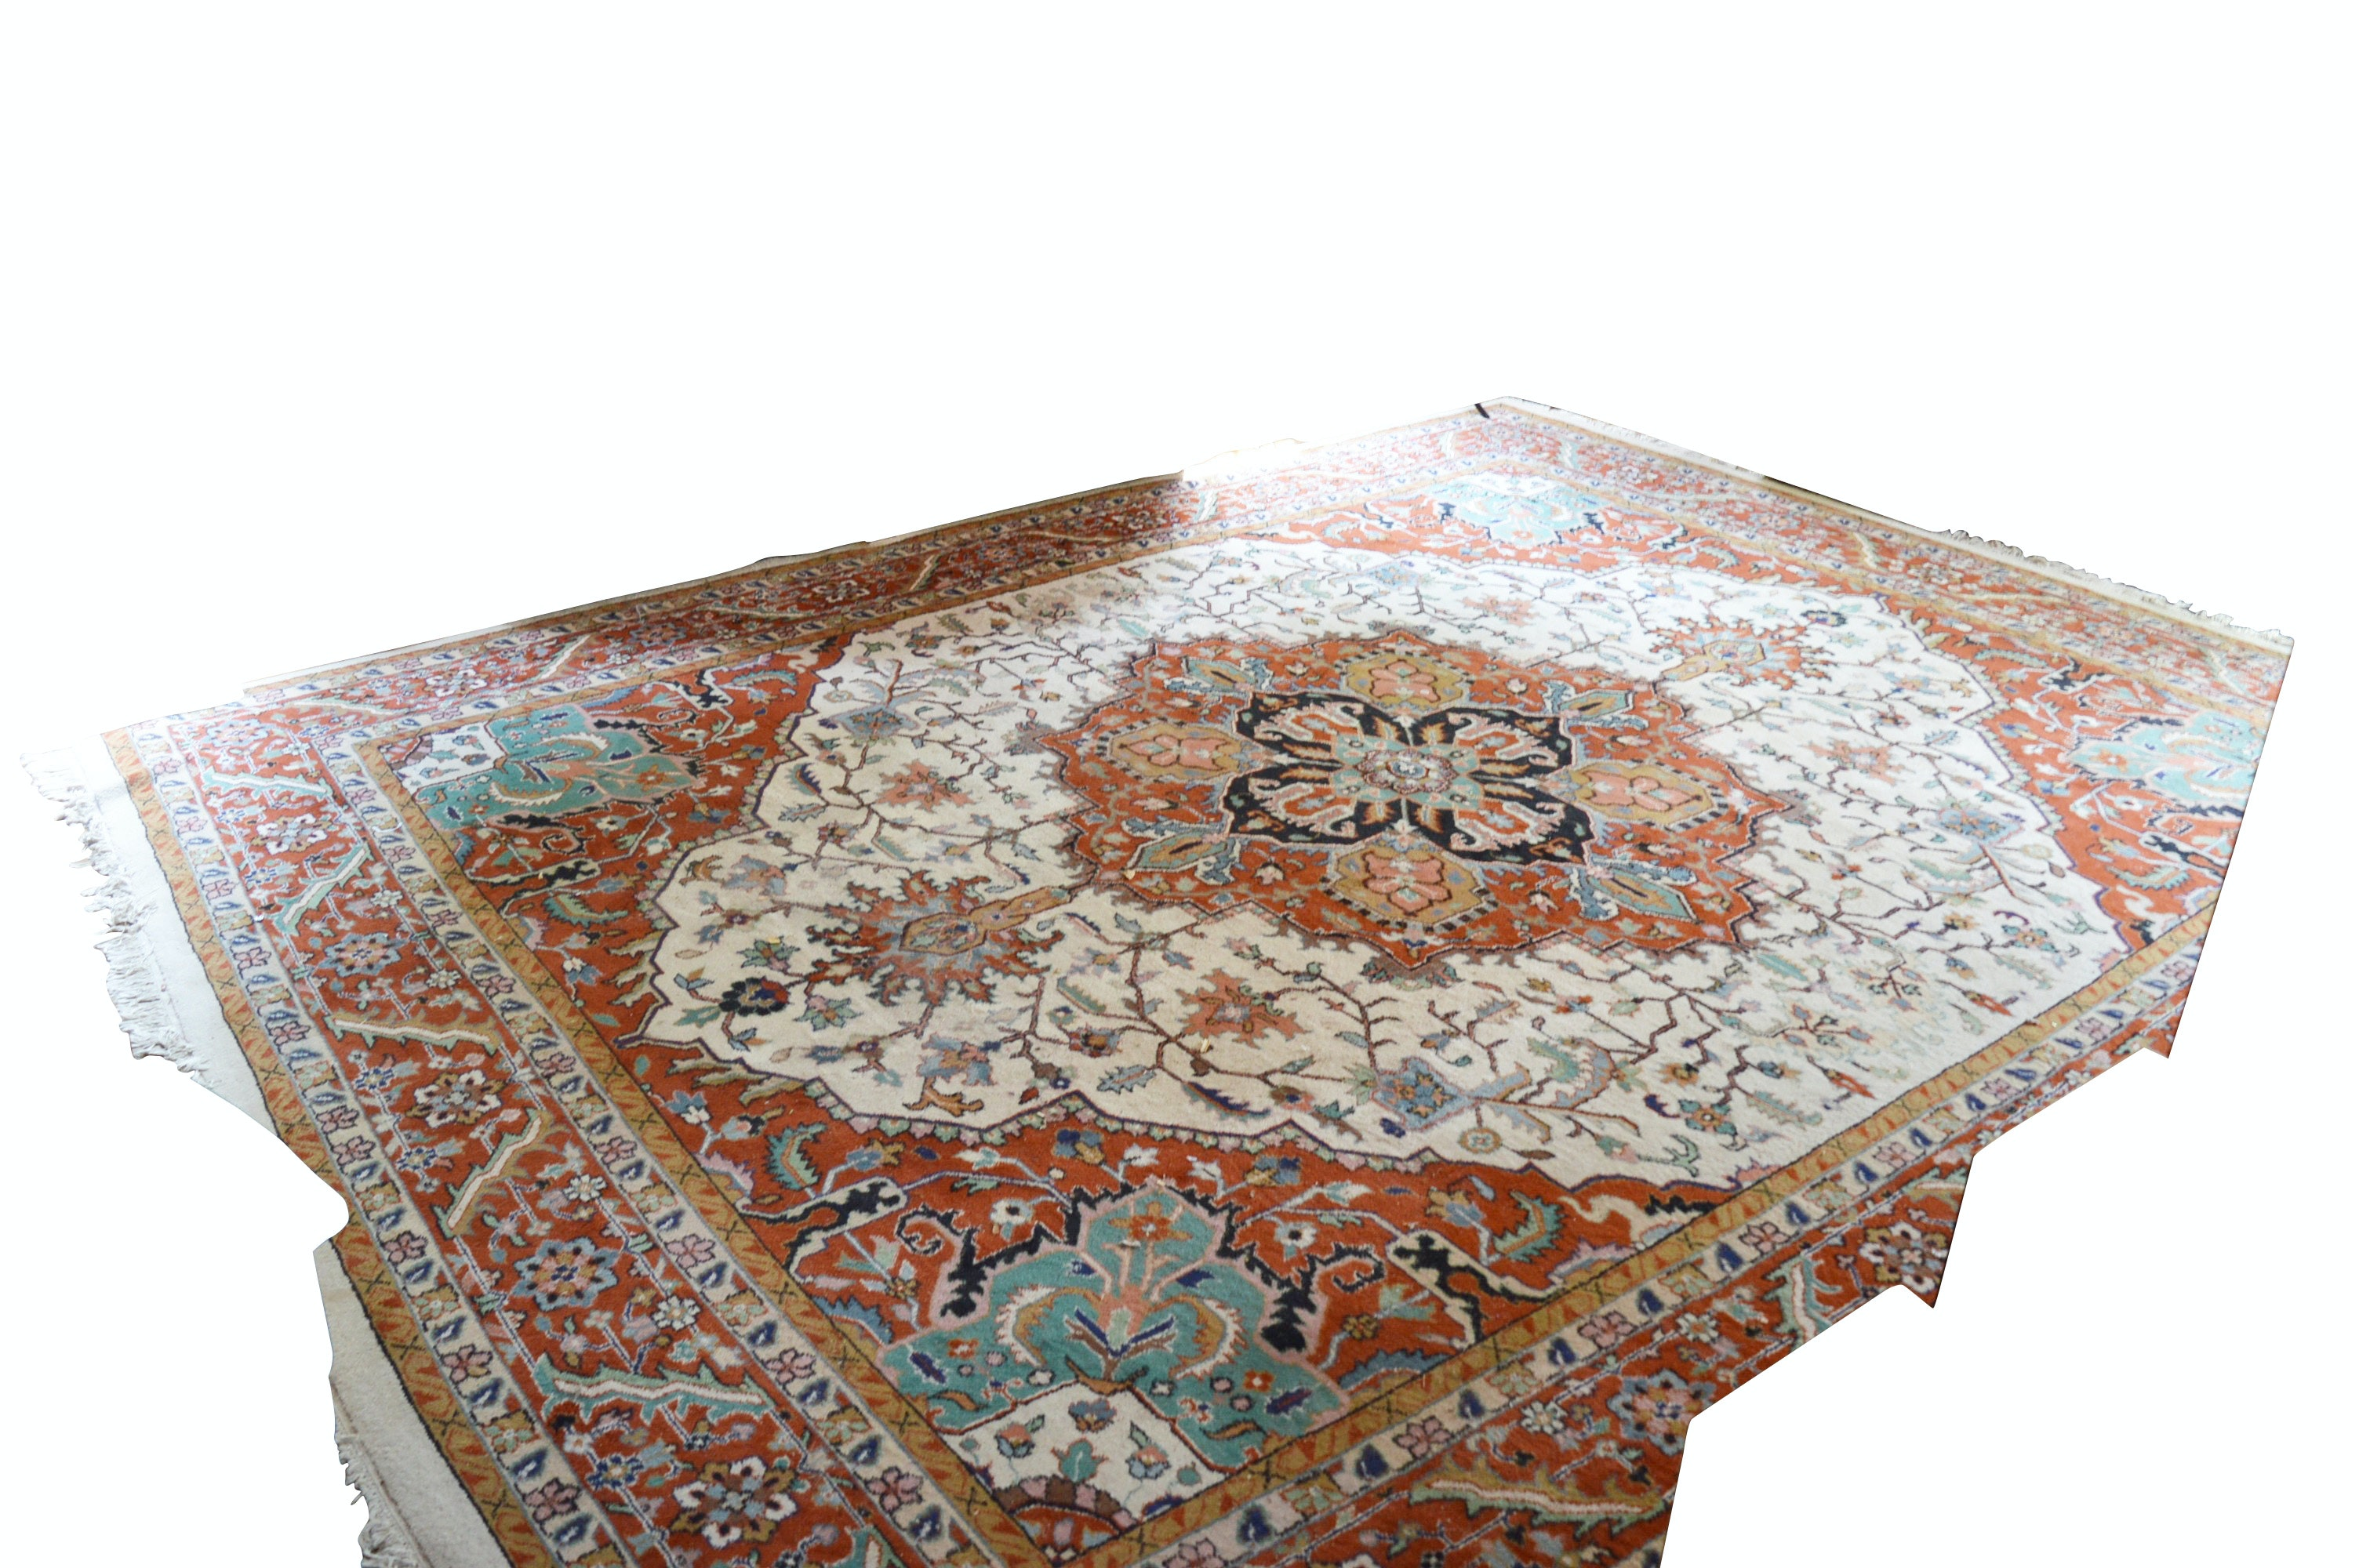 Hand-Knotted Indo-Persian Wool Room Size Rug